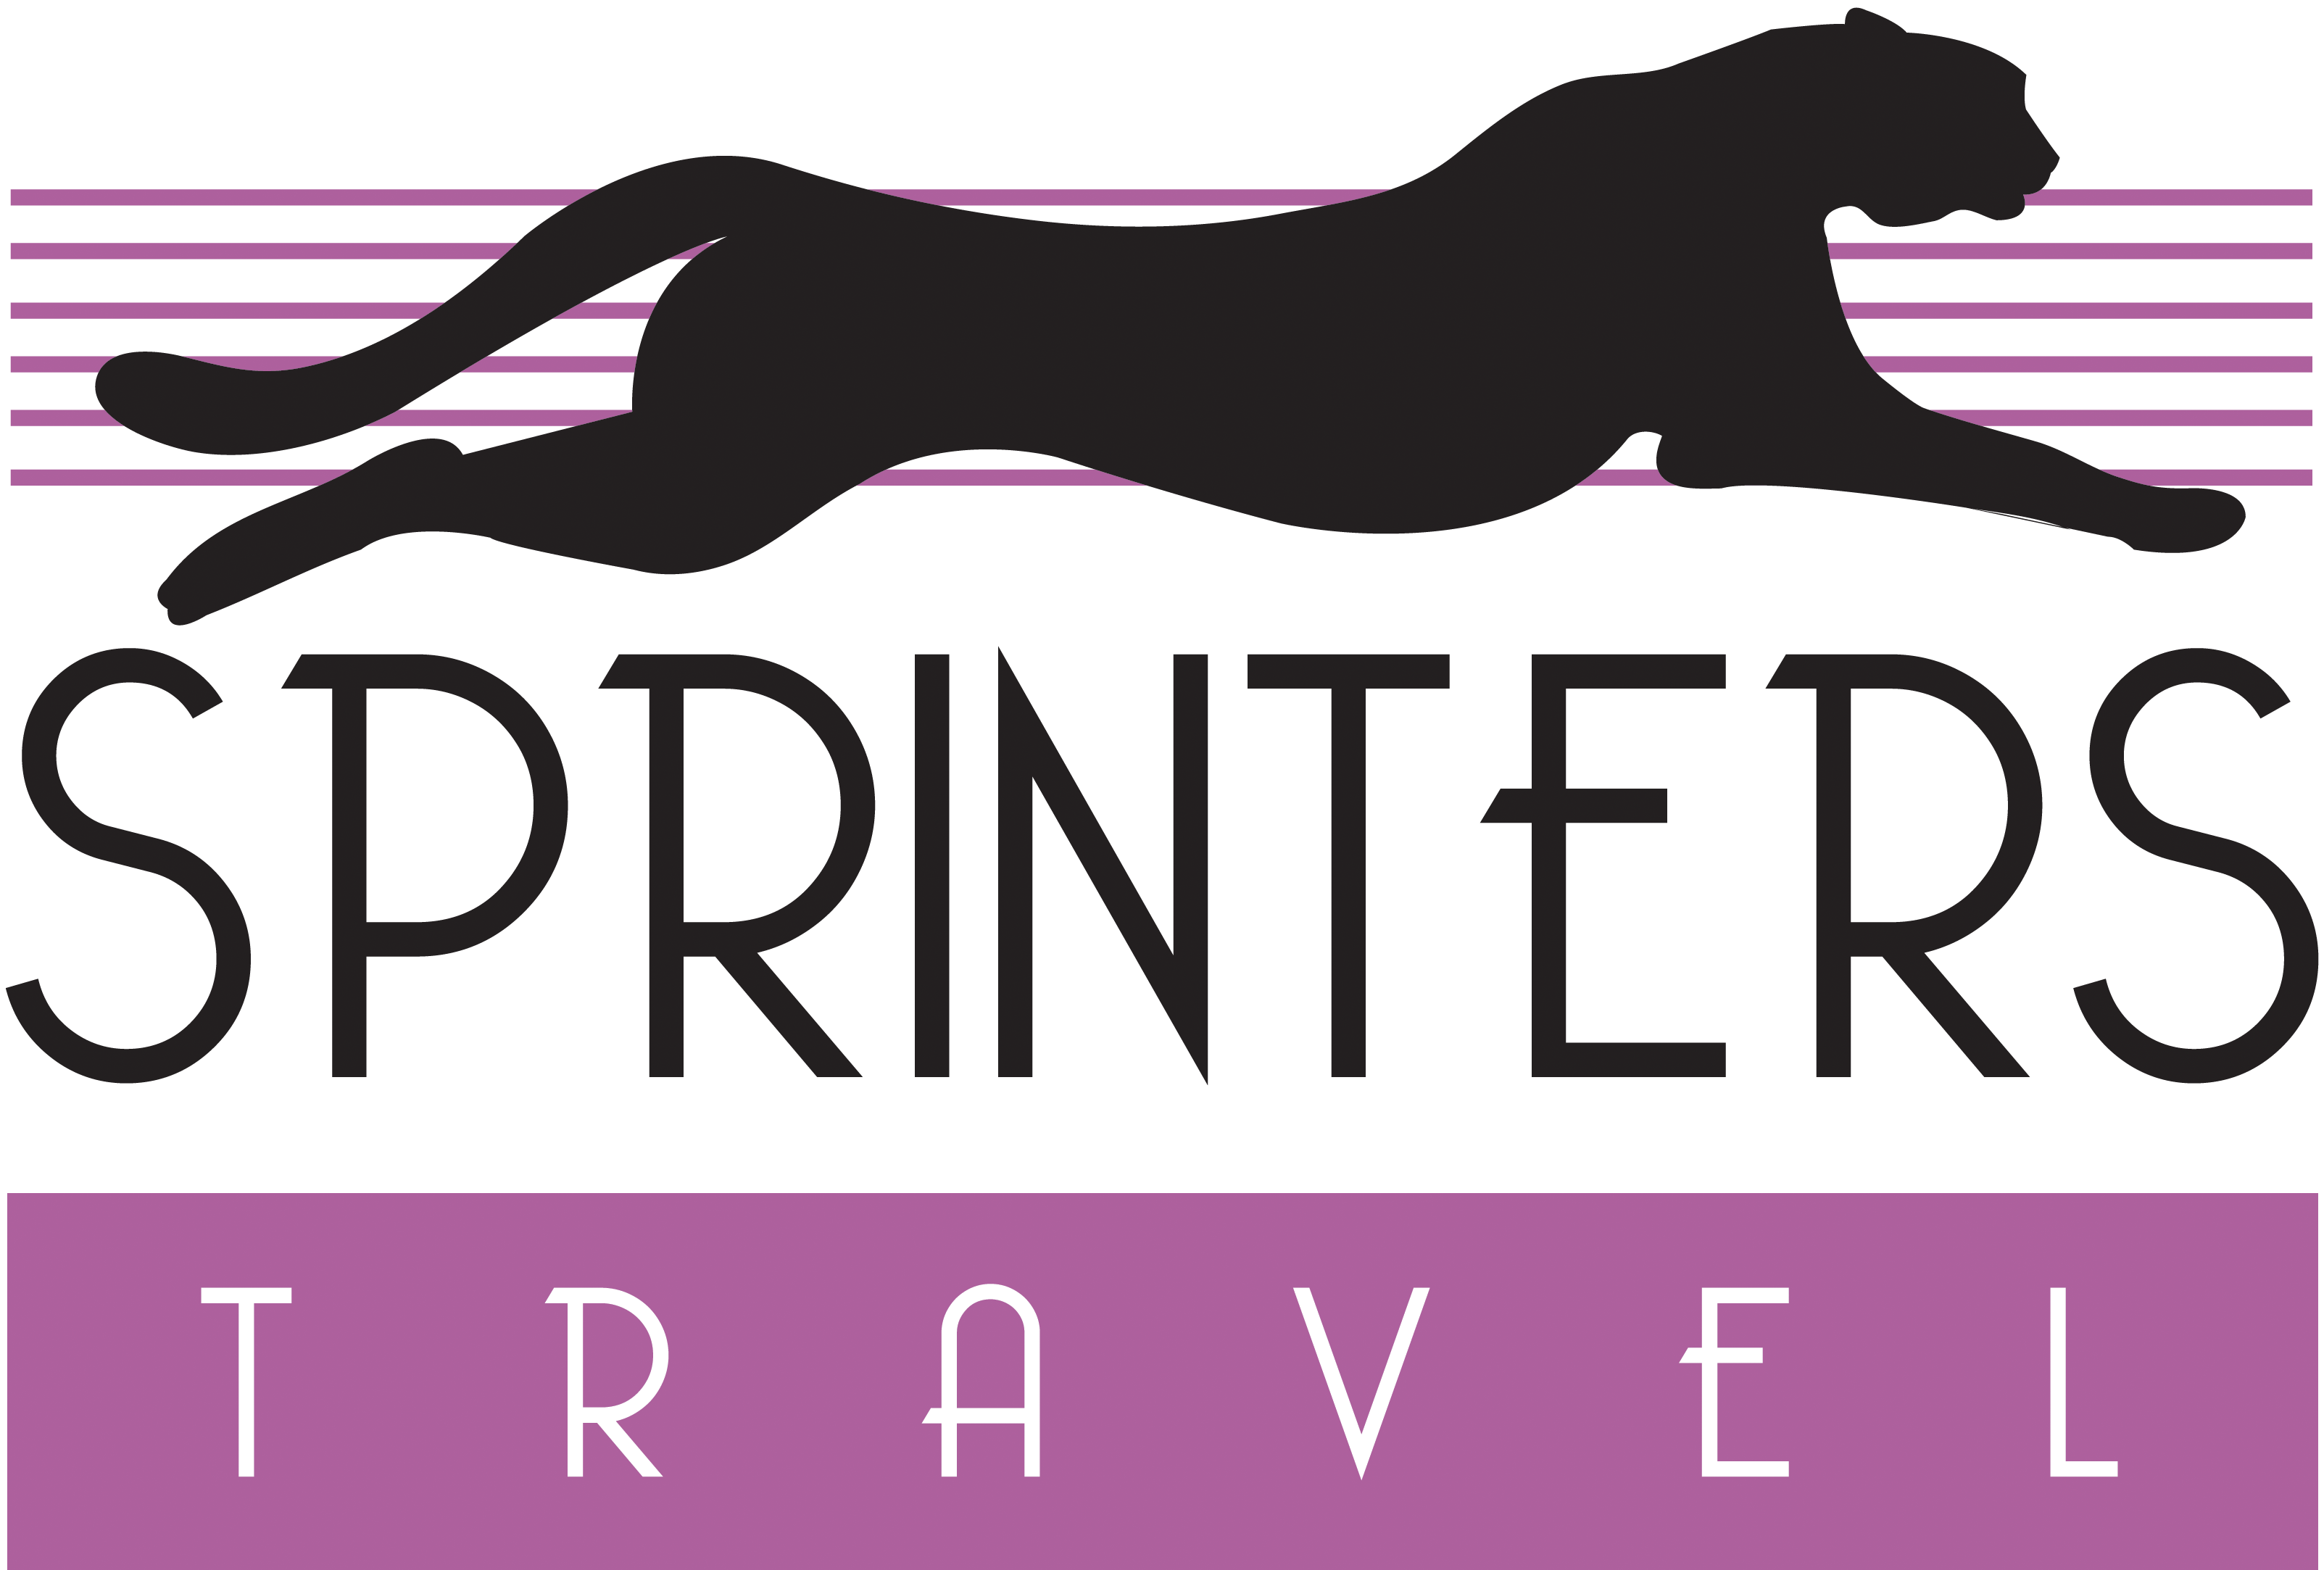 Sprinters Travel | Online Quotation Form for Coach and Minibus Hire - Sprinters Travel - Minibus hire with drivers